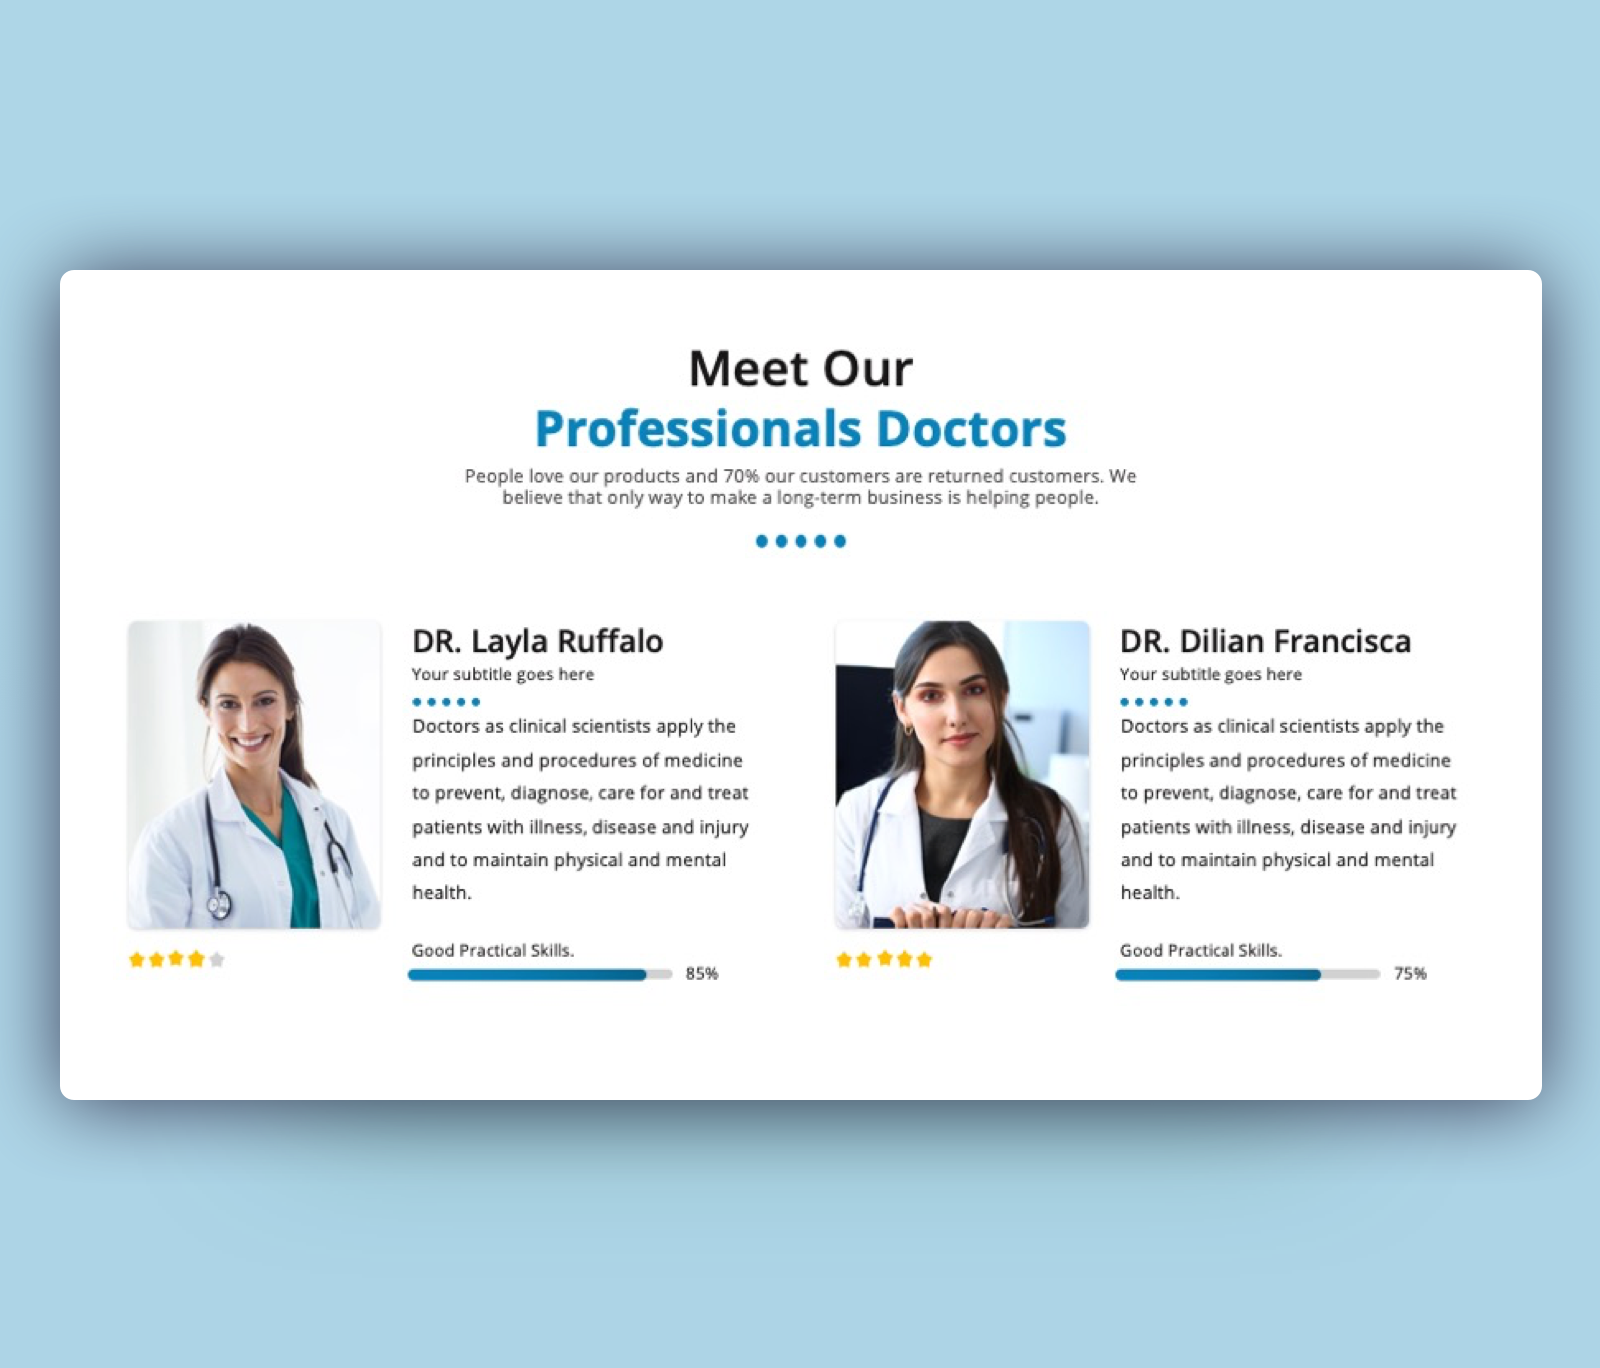 Meet our Professional Doctors PowerPoint Template